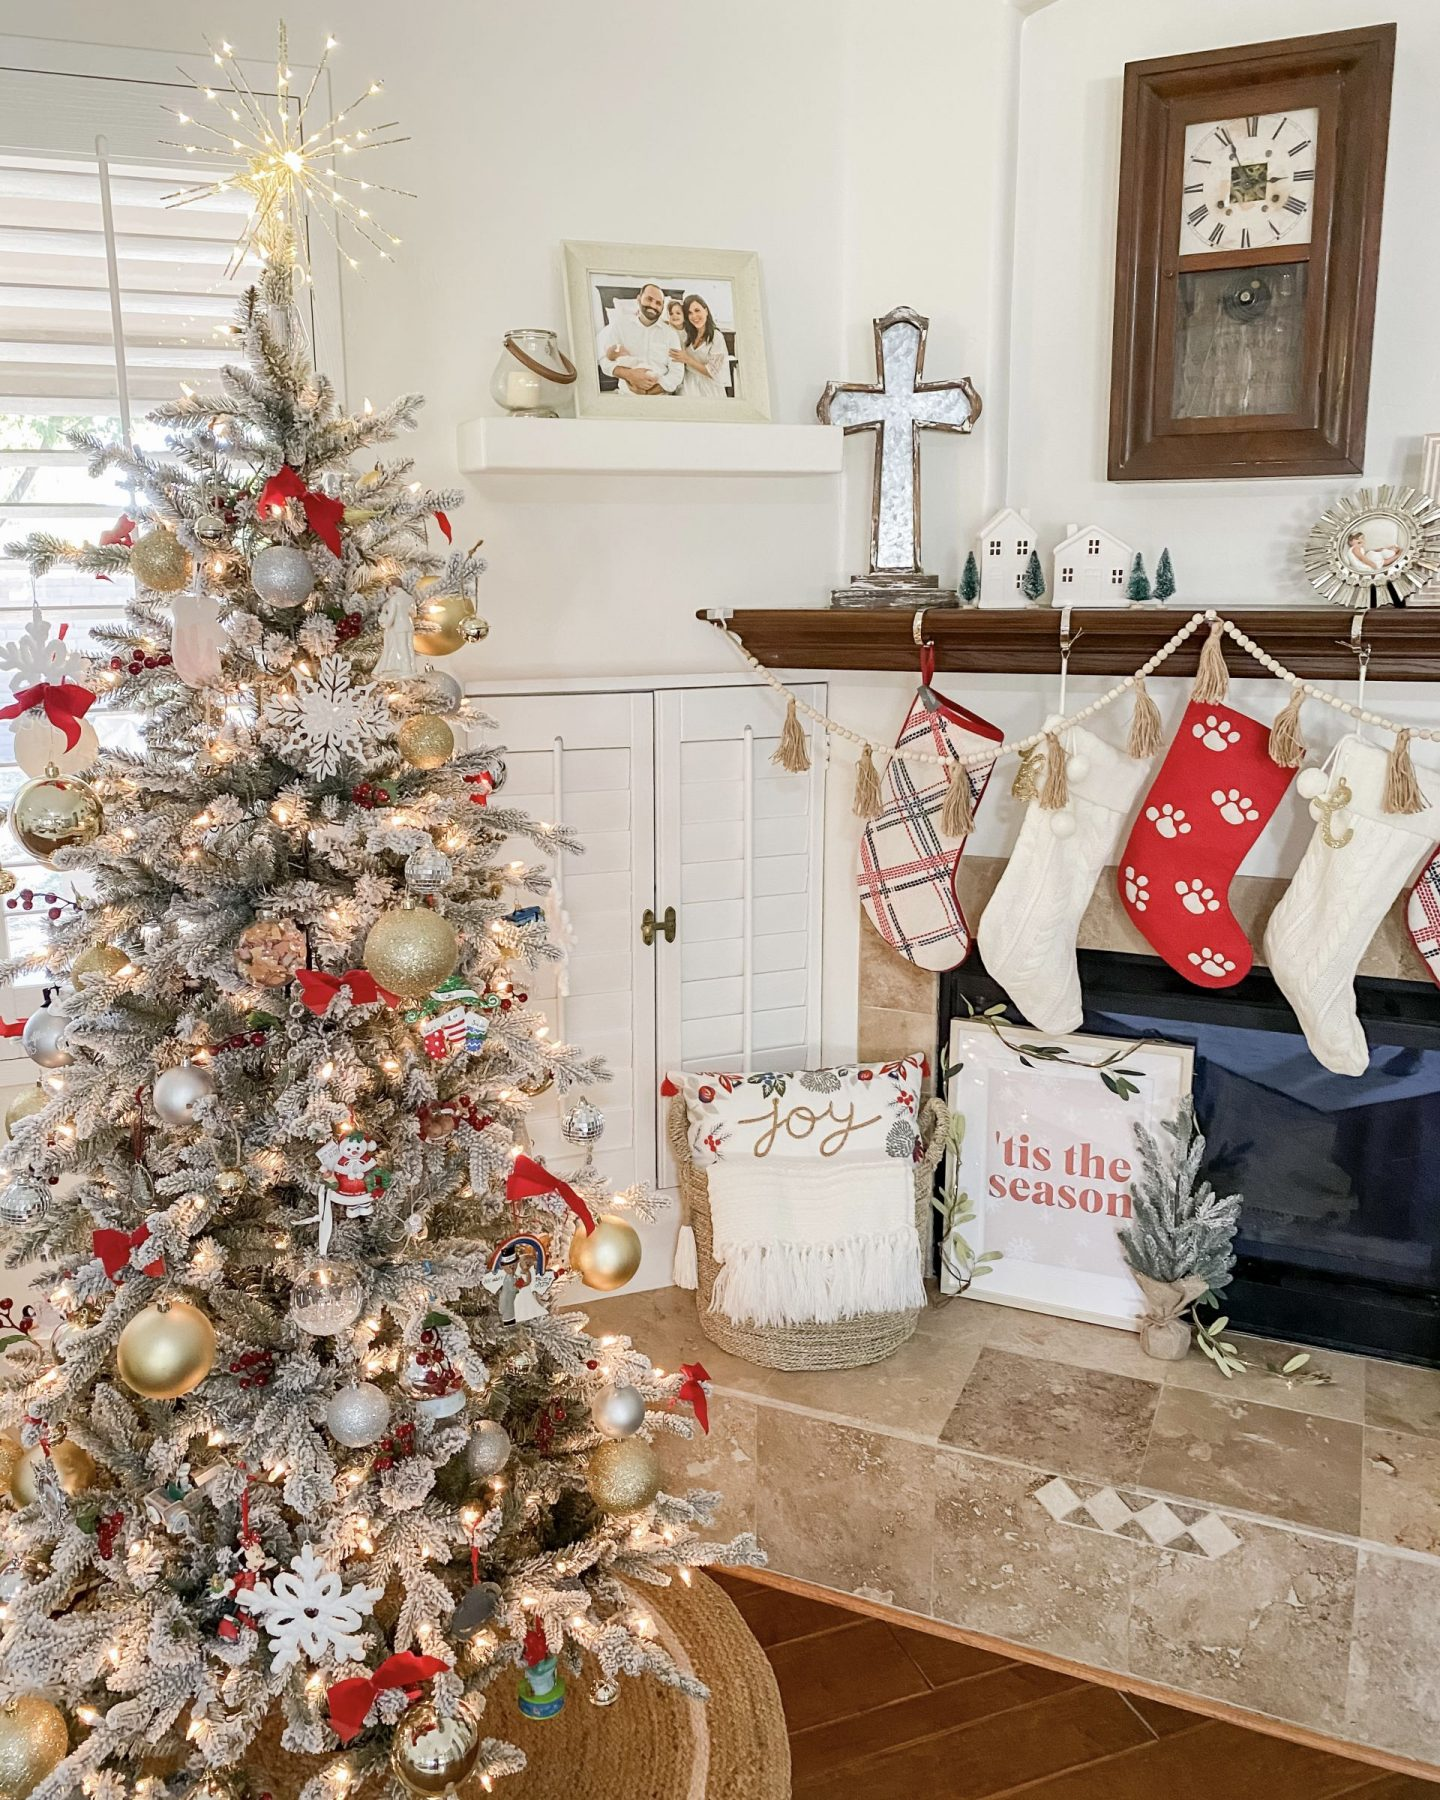 Christmas Home Tour Holiday Decor Flocked Tree Stockings